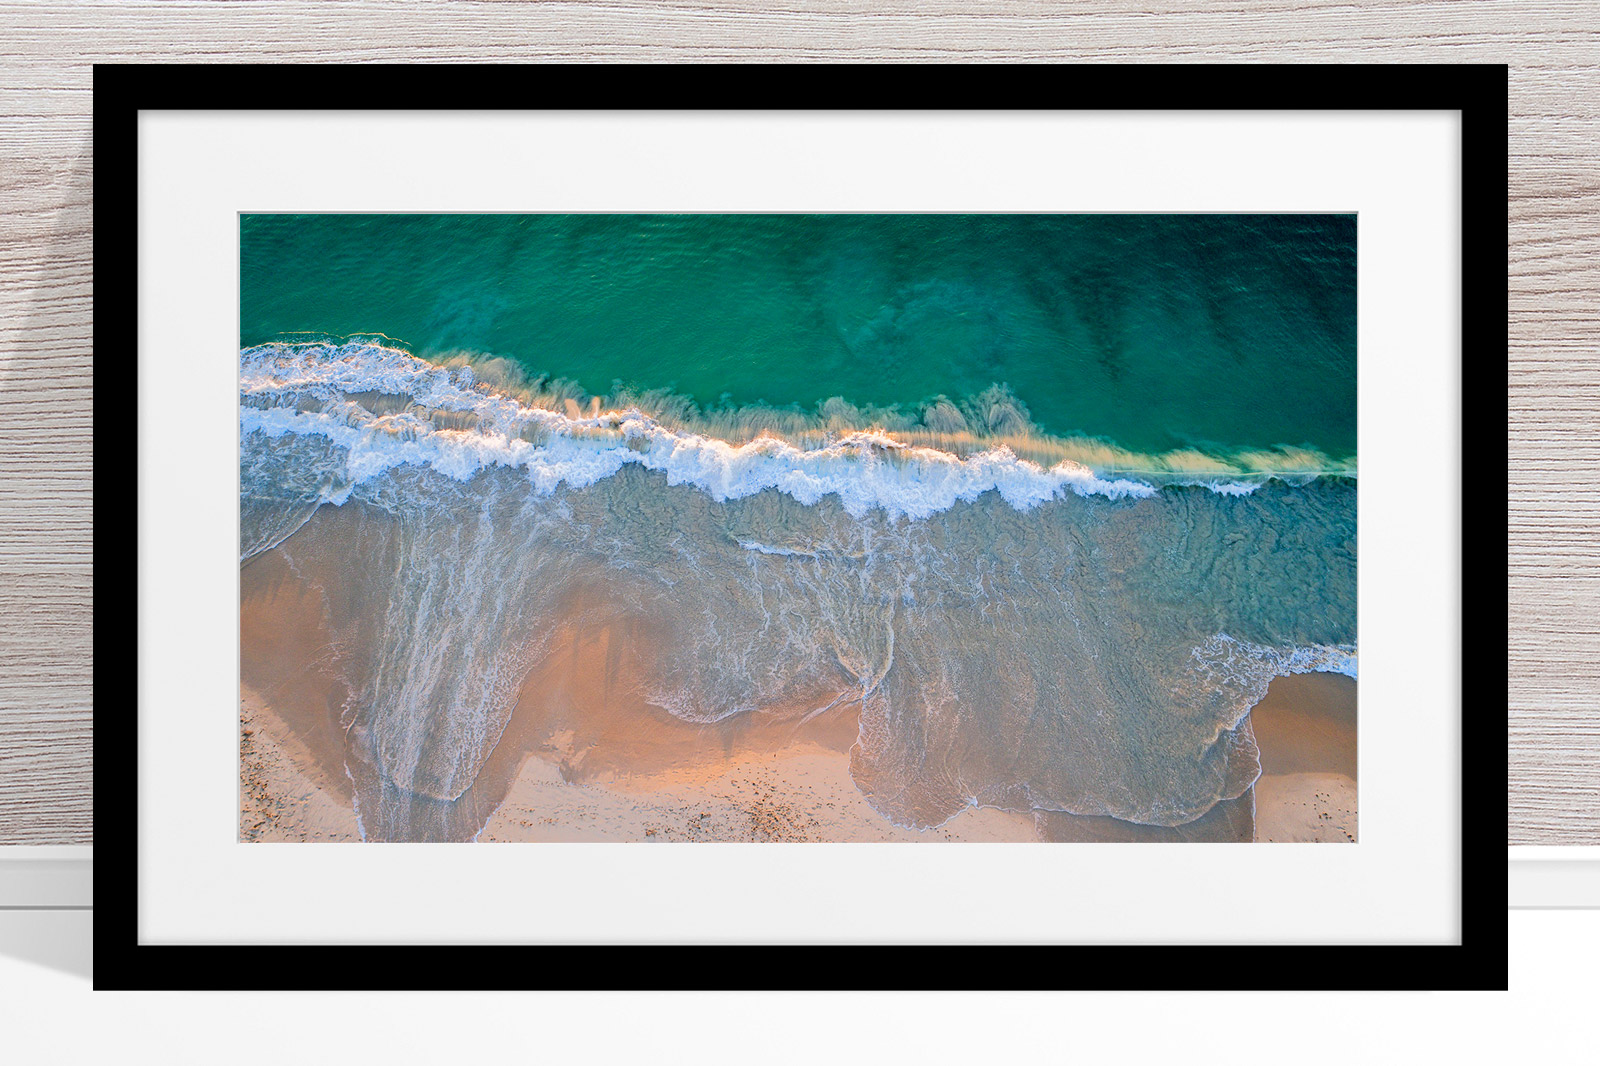 014 - Jason Mazur - 'City Beach Aerial' Black Frame